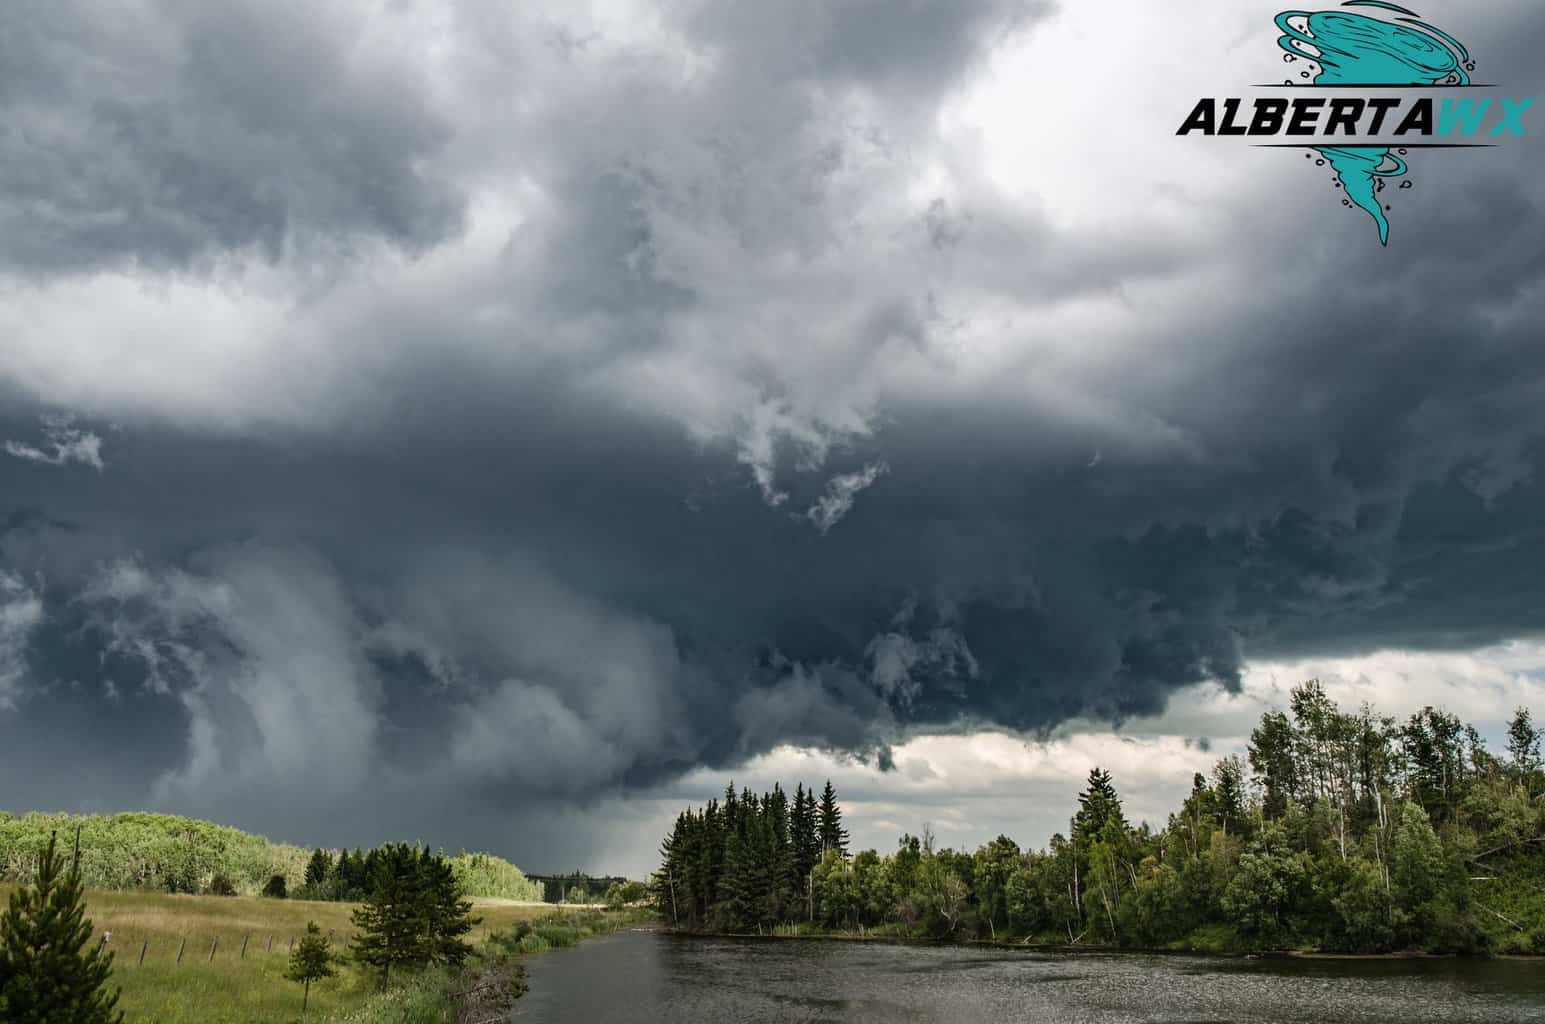 Violent HP supercell hovering over a small lake near Ponoka, Alberta July 23 2017. Tennis ball sized hail, flash flooding, and damaging winds.